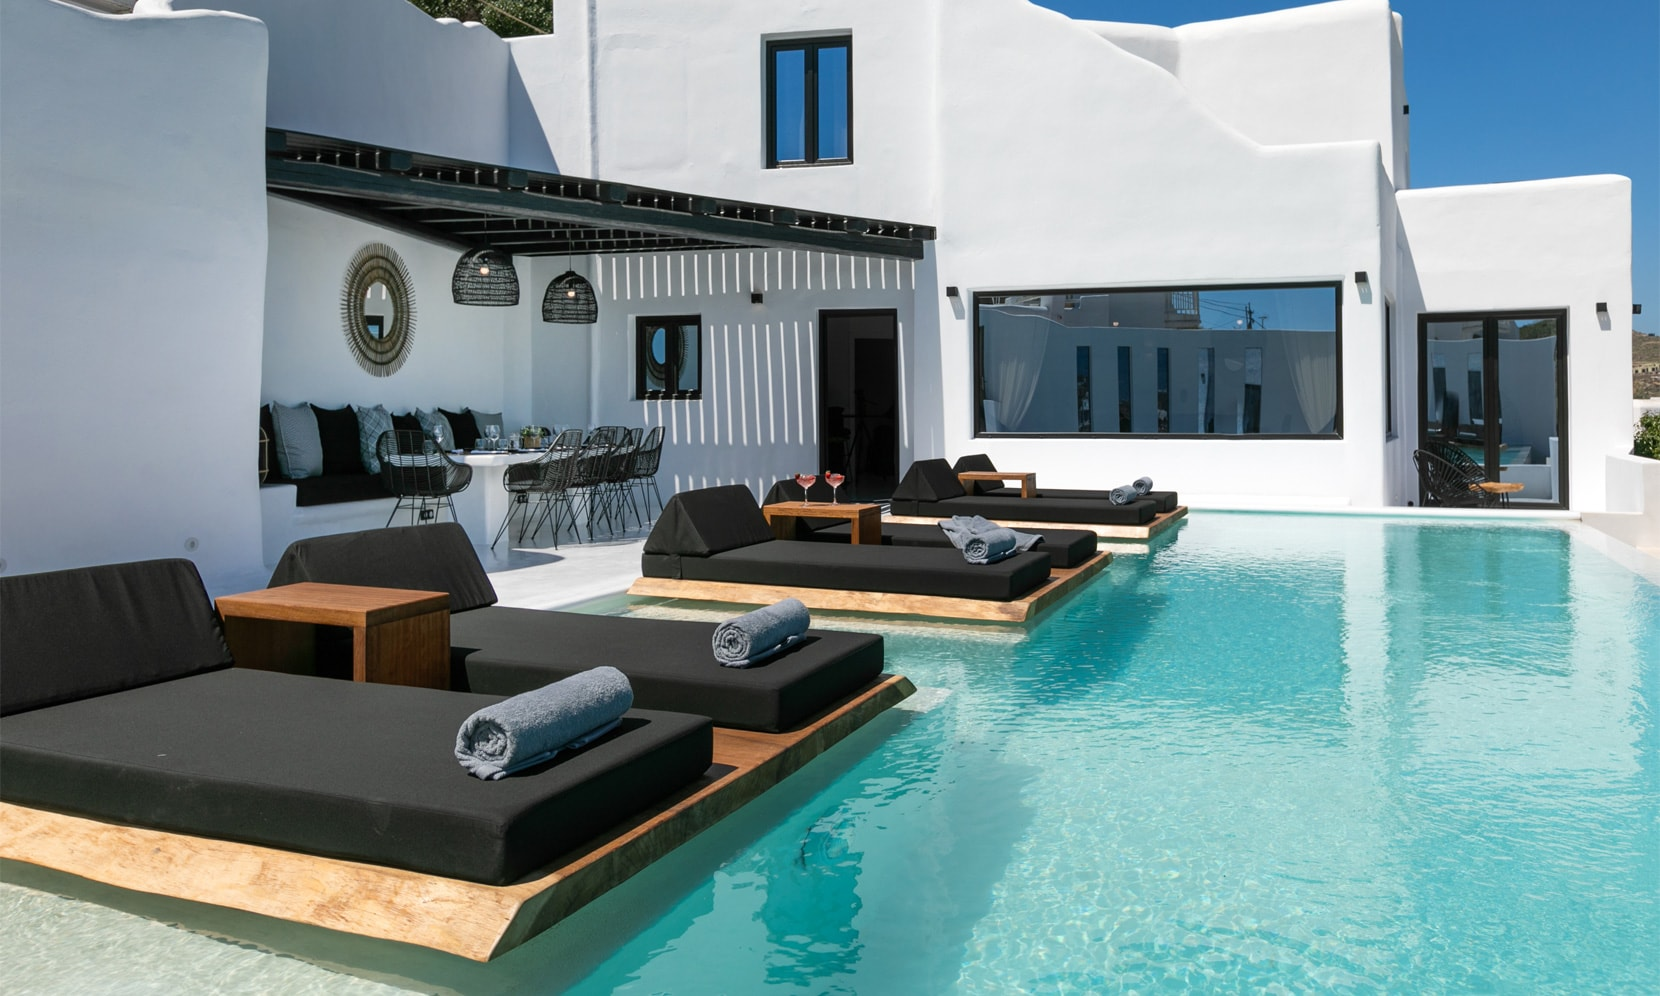 Property Image 2 - Stylish modern villa with private pool and jacuzzi